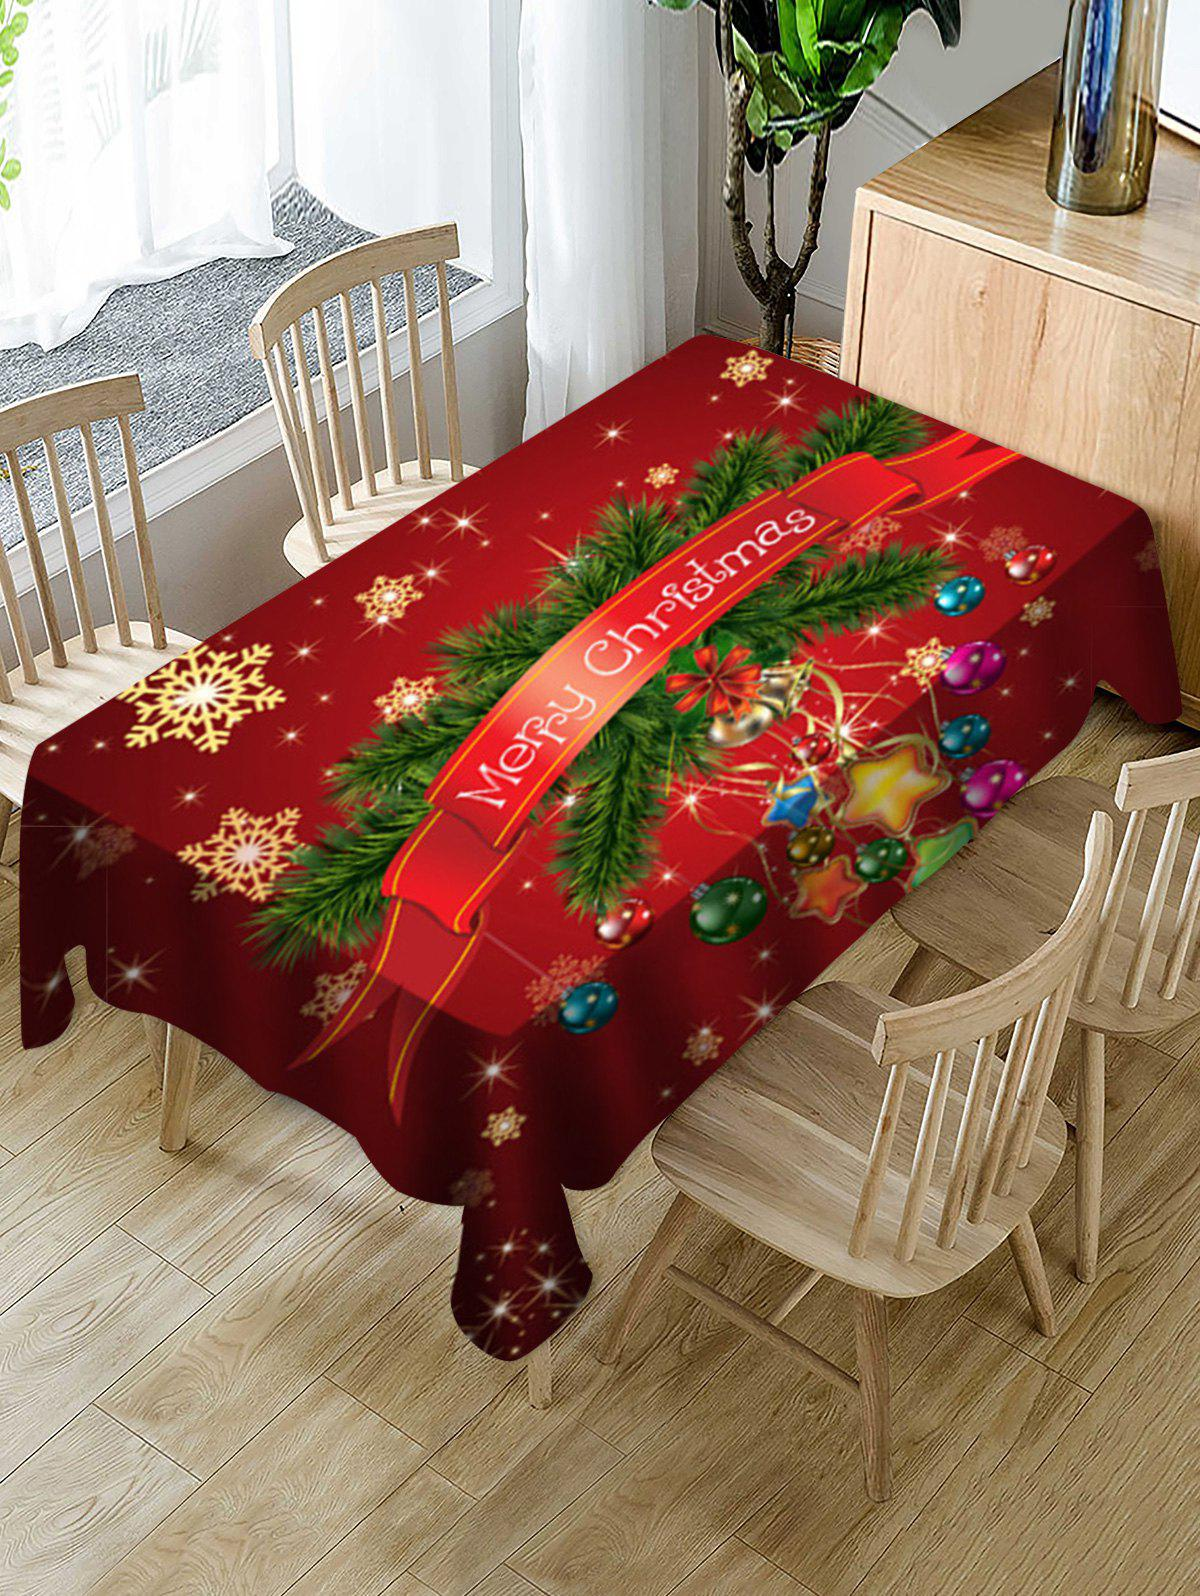 Buy Merry Christmas Snowflake Print Fabric Waterproof Tablecloth